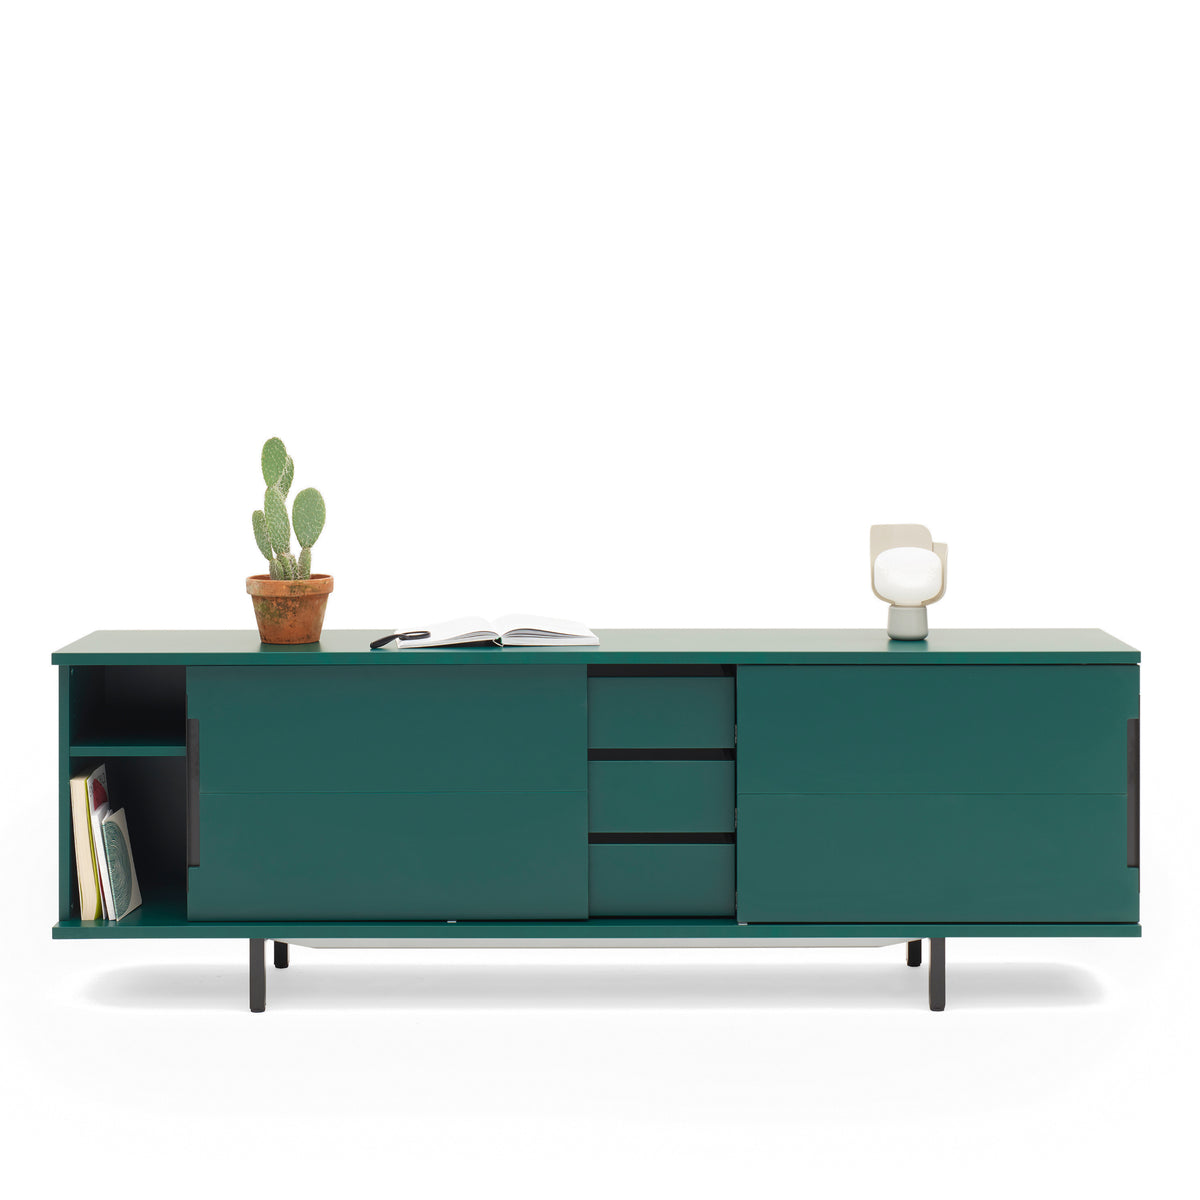 Edsbyn Office Part Sideboard 1800mmW